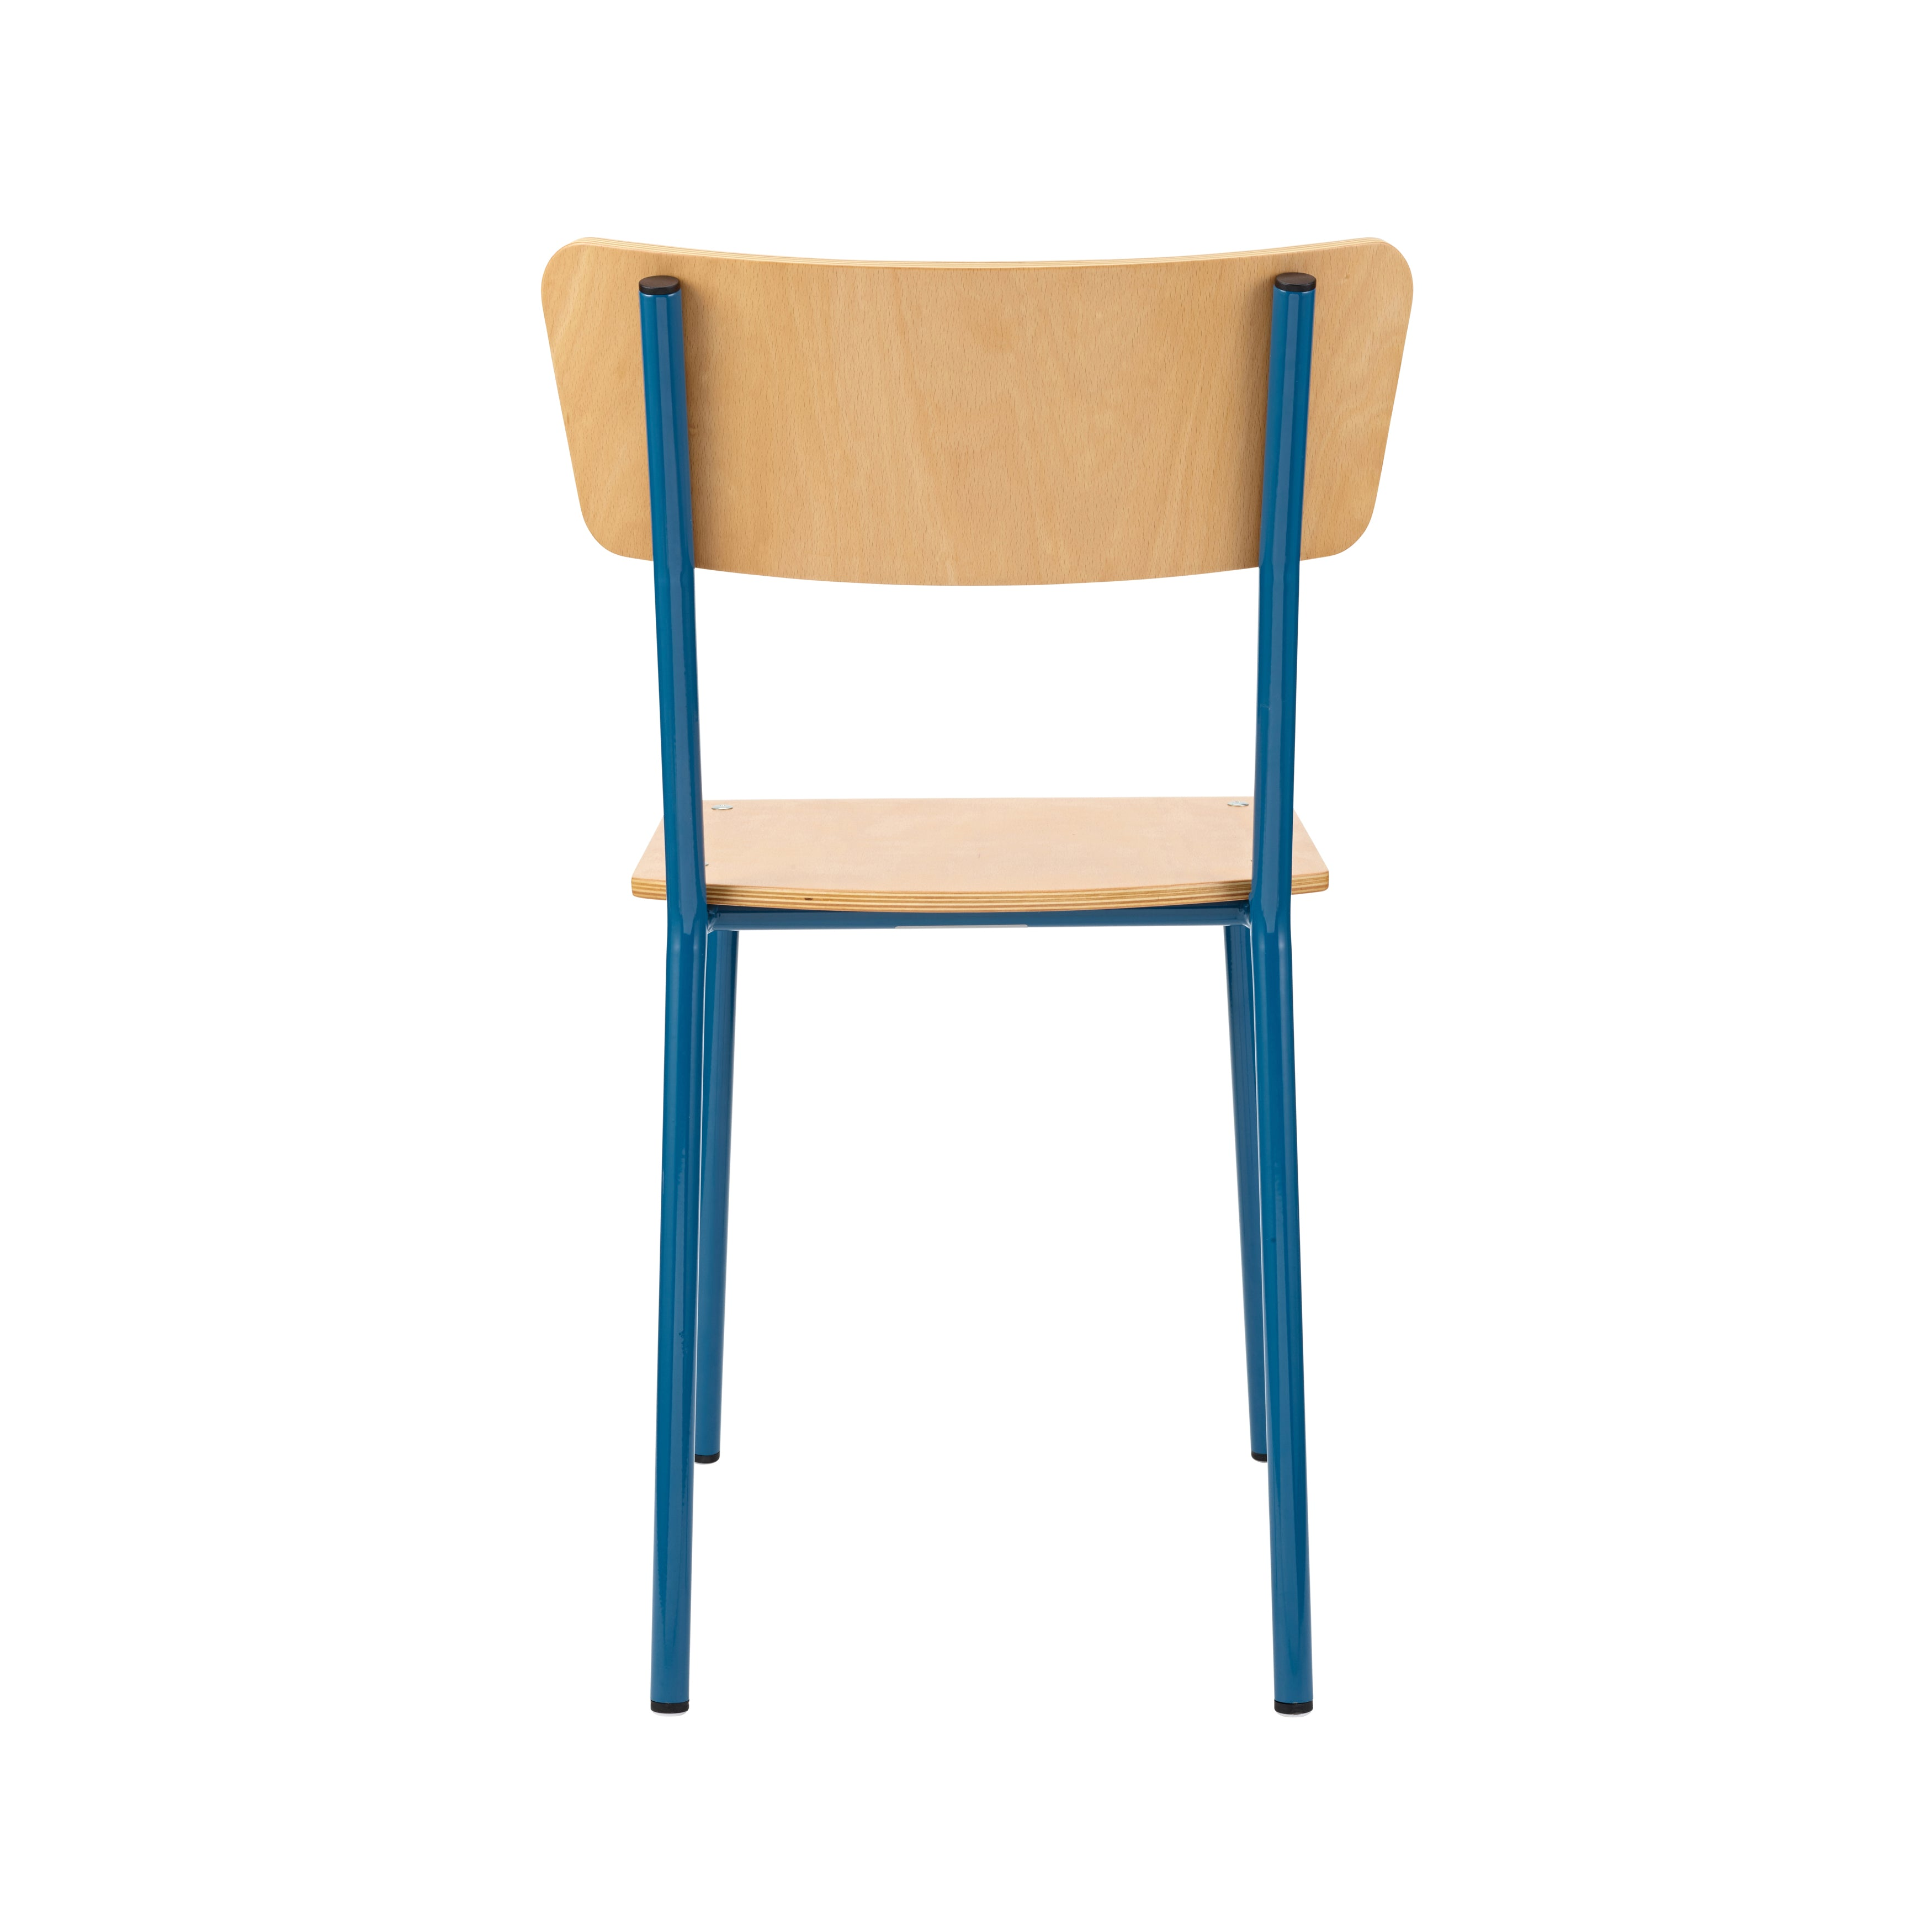 School chair back Pre The Original Contemporary School Chair Beech 16 Galapagos Furniture The Original Contemporary School Chair Beech 16 Galapagos Furniture